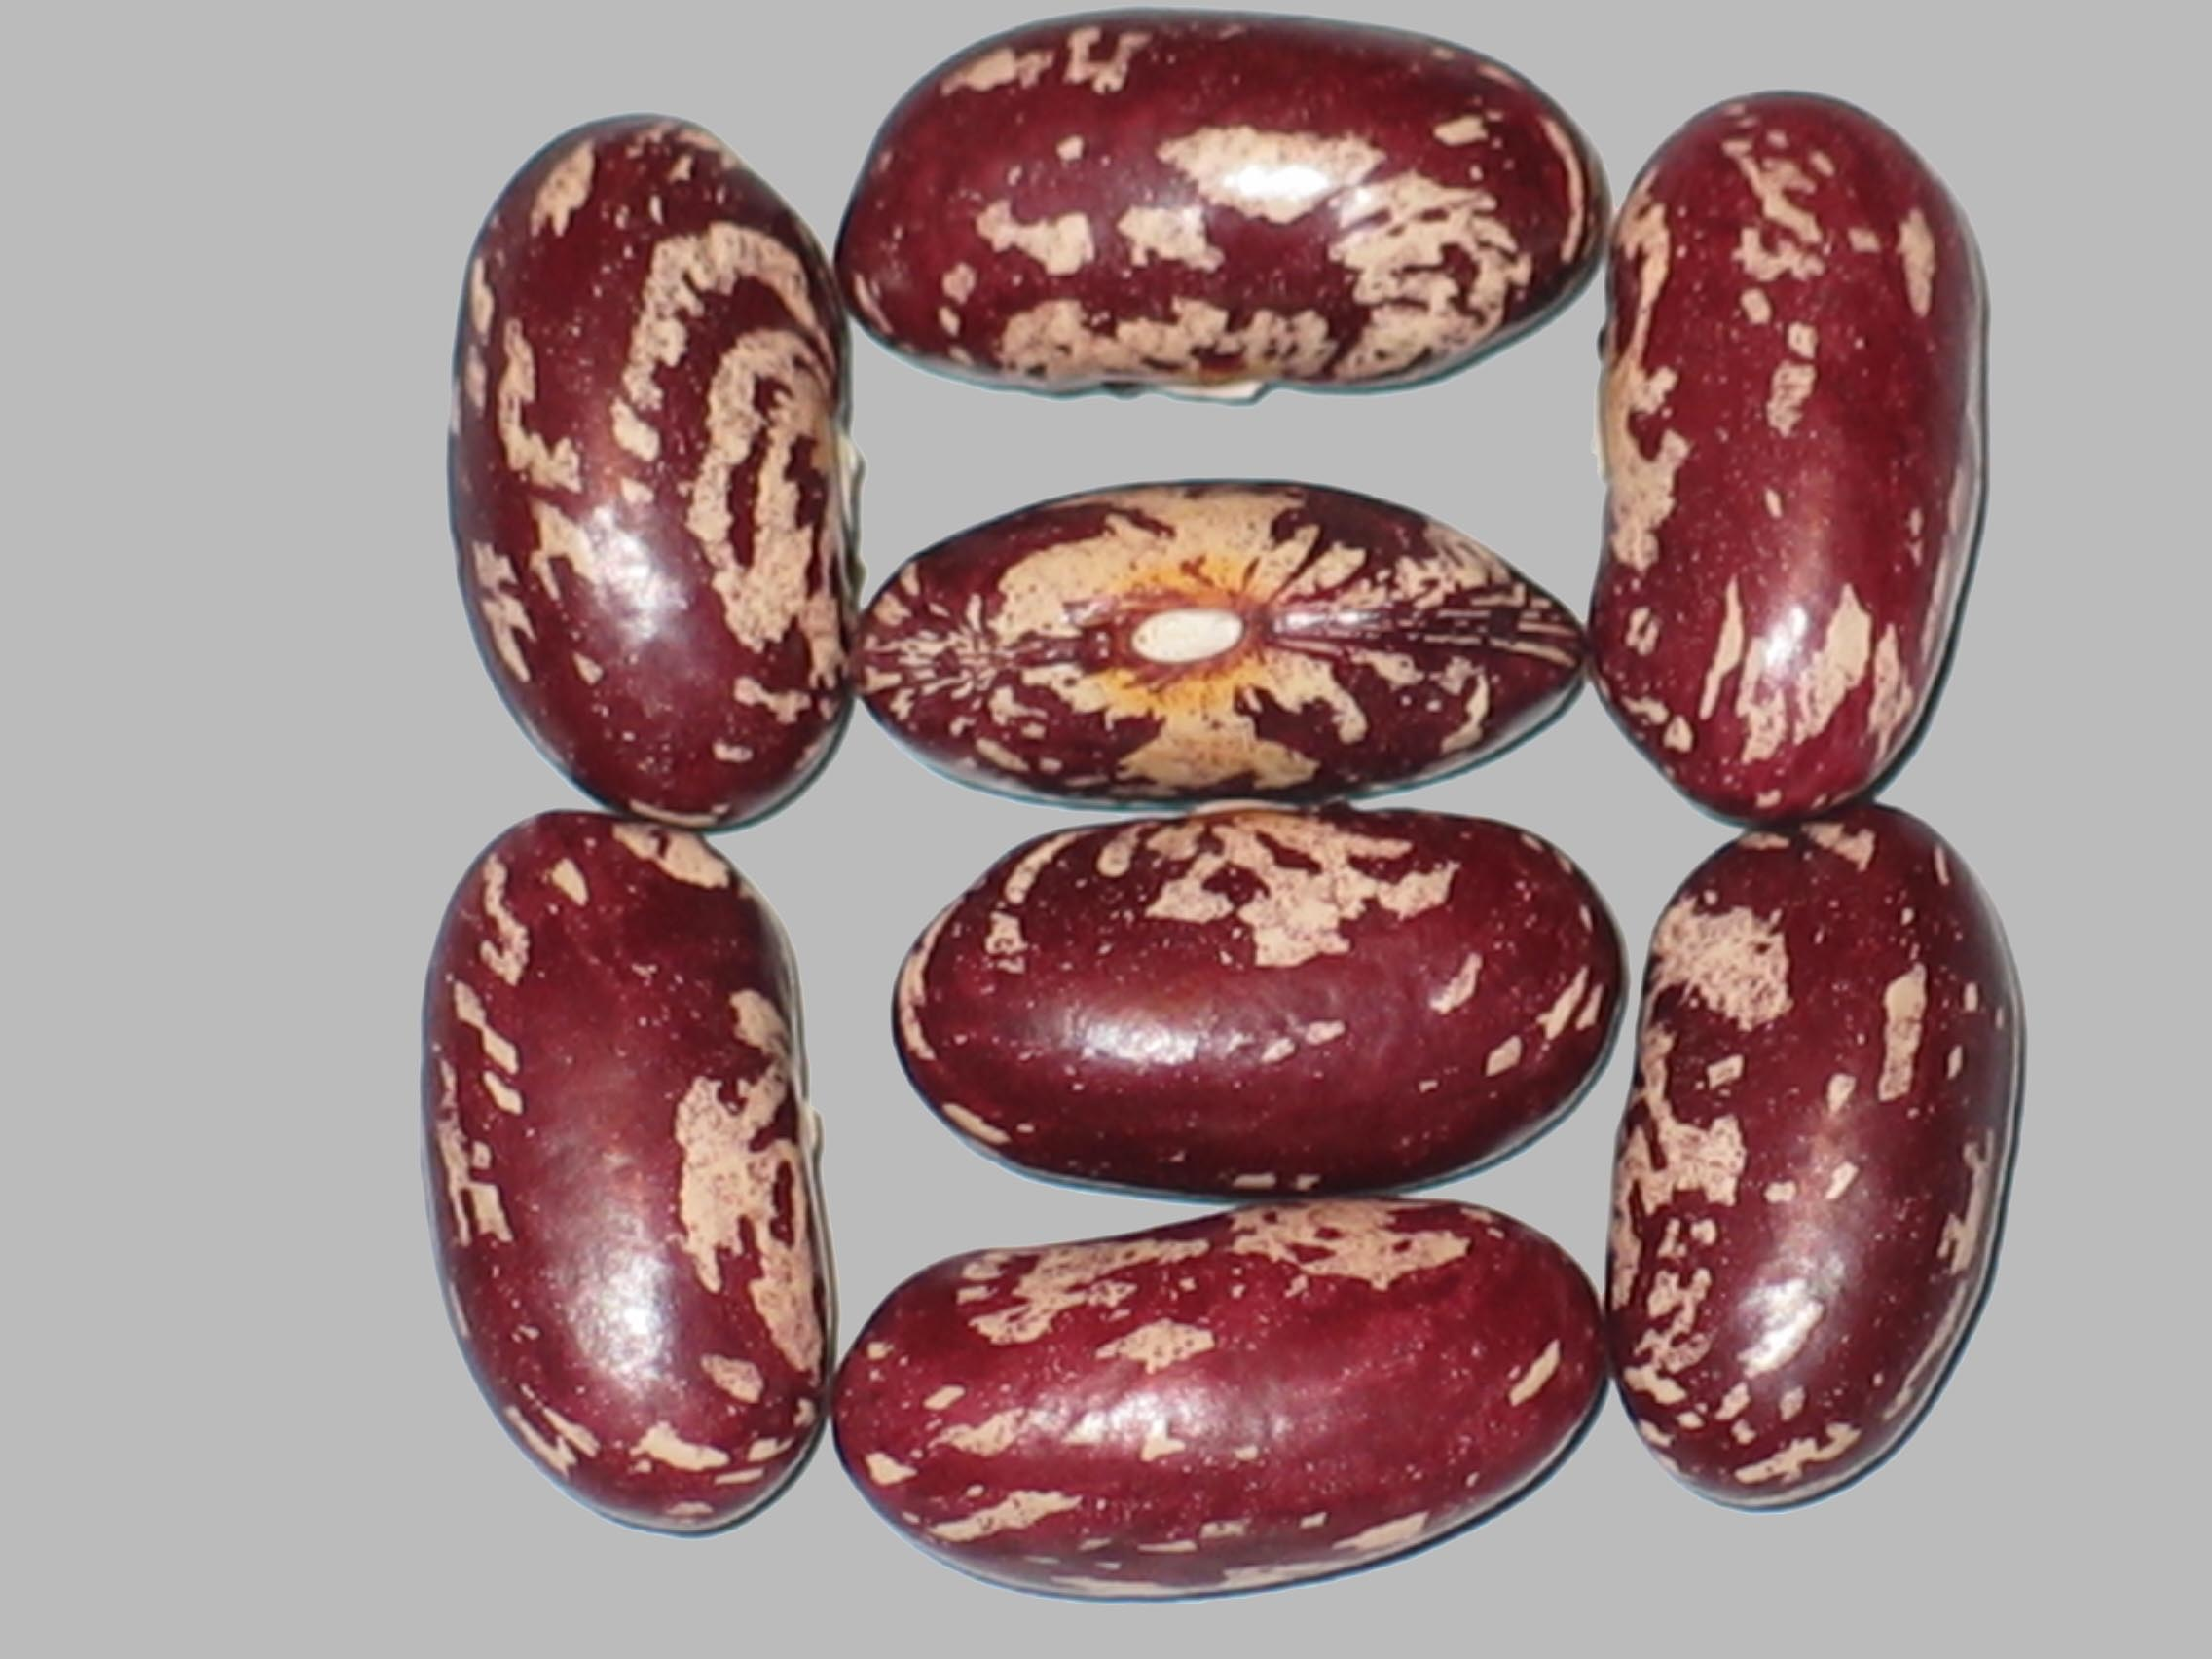 image of Shelleasy X Soldier beans